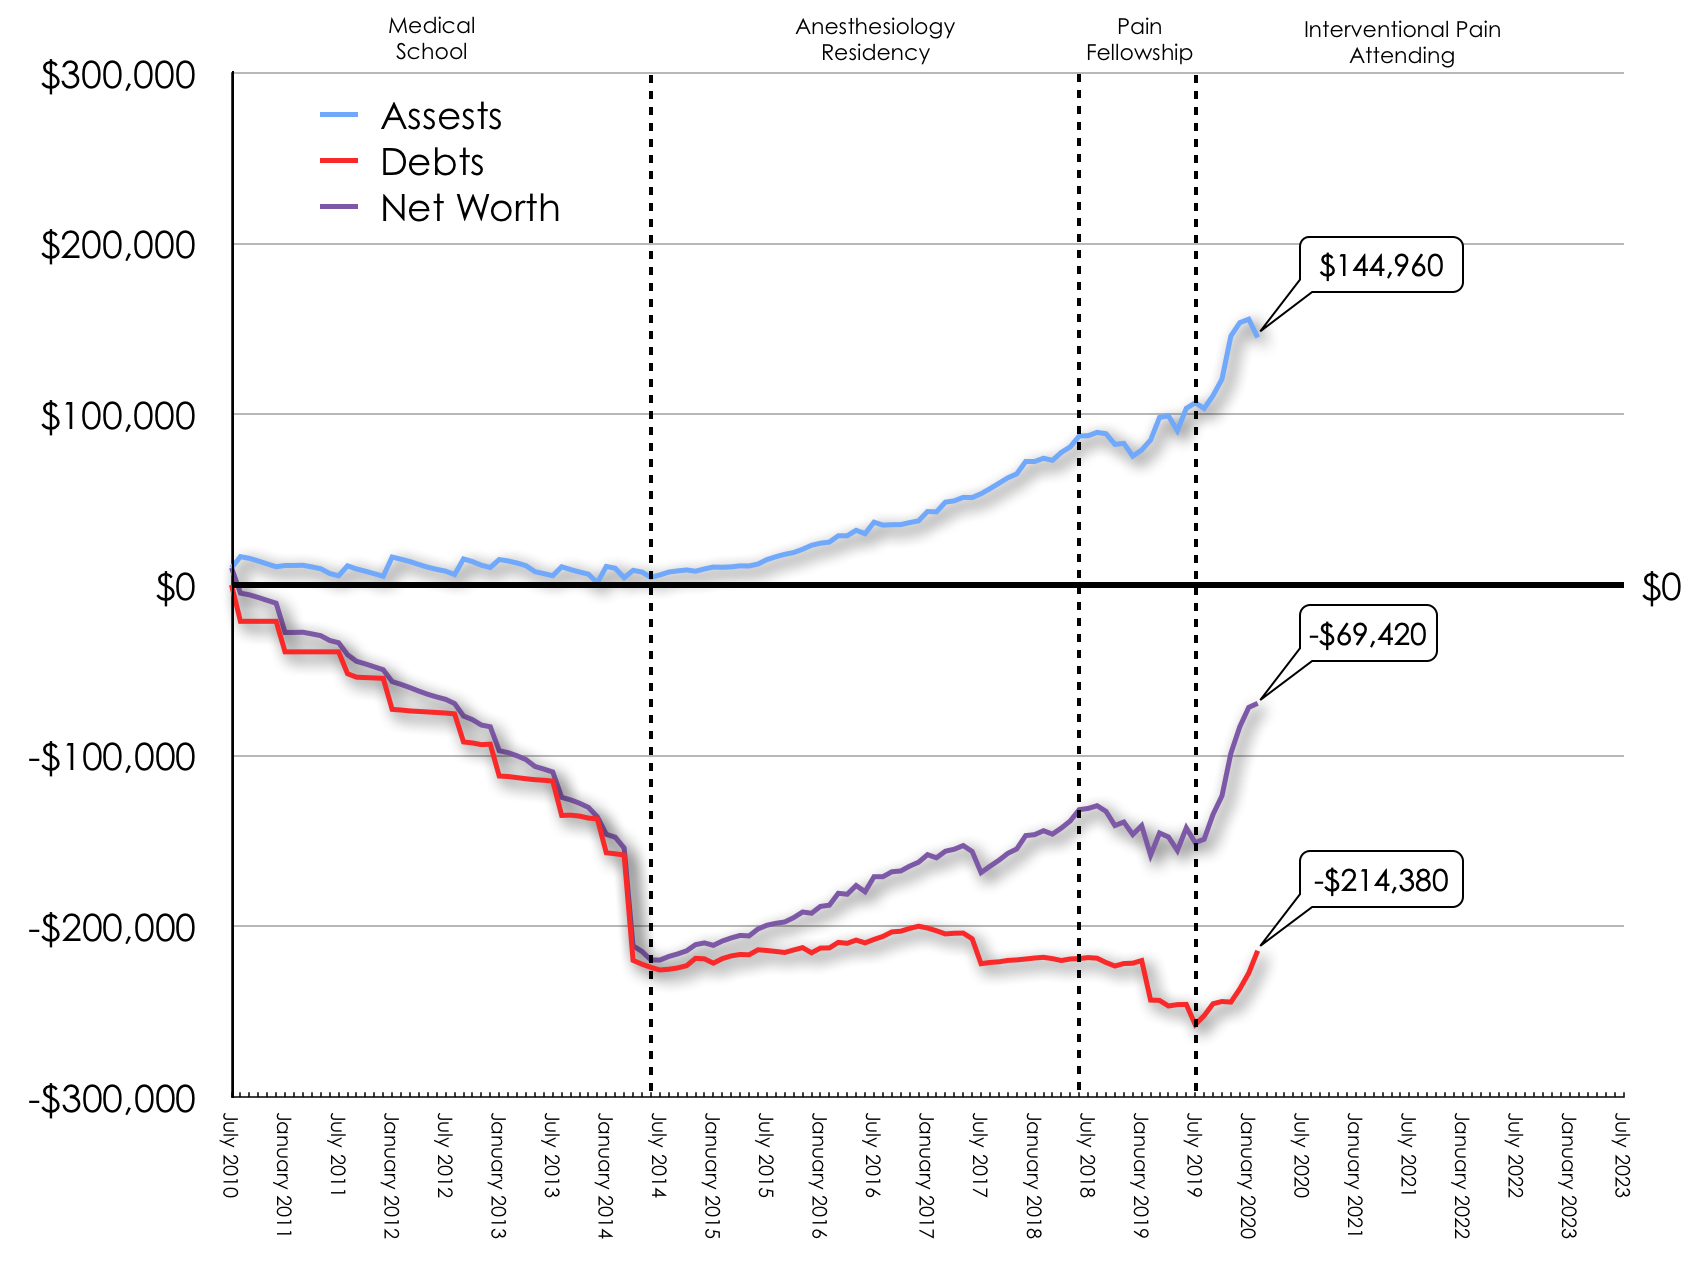 February 2020 Net Worth Trend